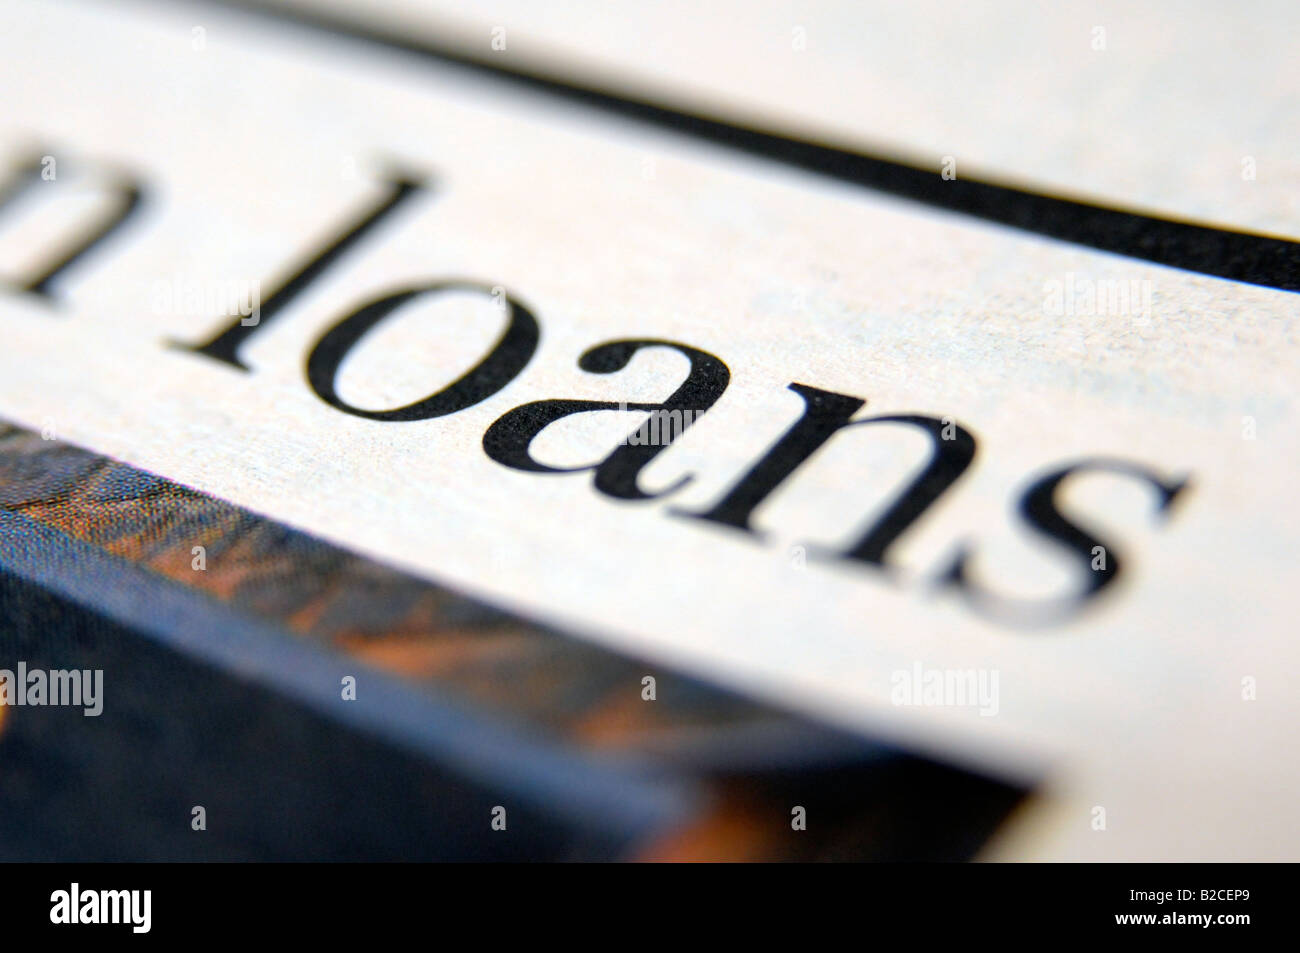 Photograph of newspaper headline about the credit crunch and economic downturn and recession leading to bank loans - Stock Image